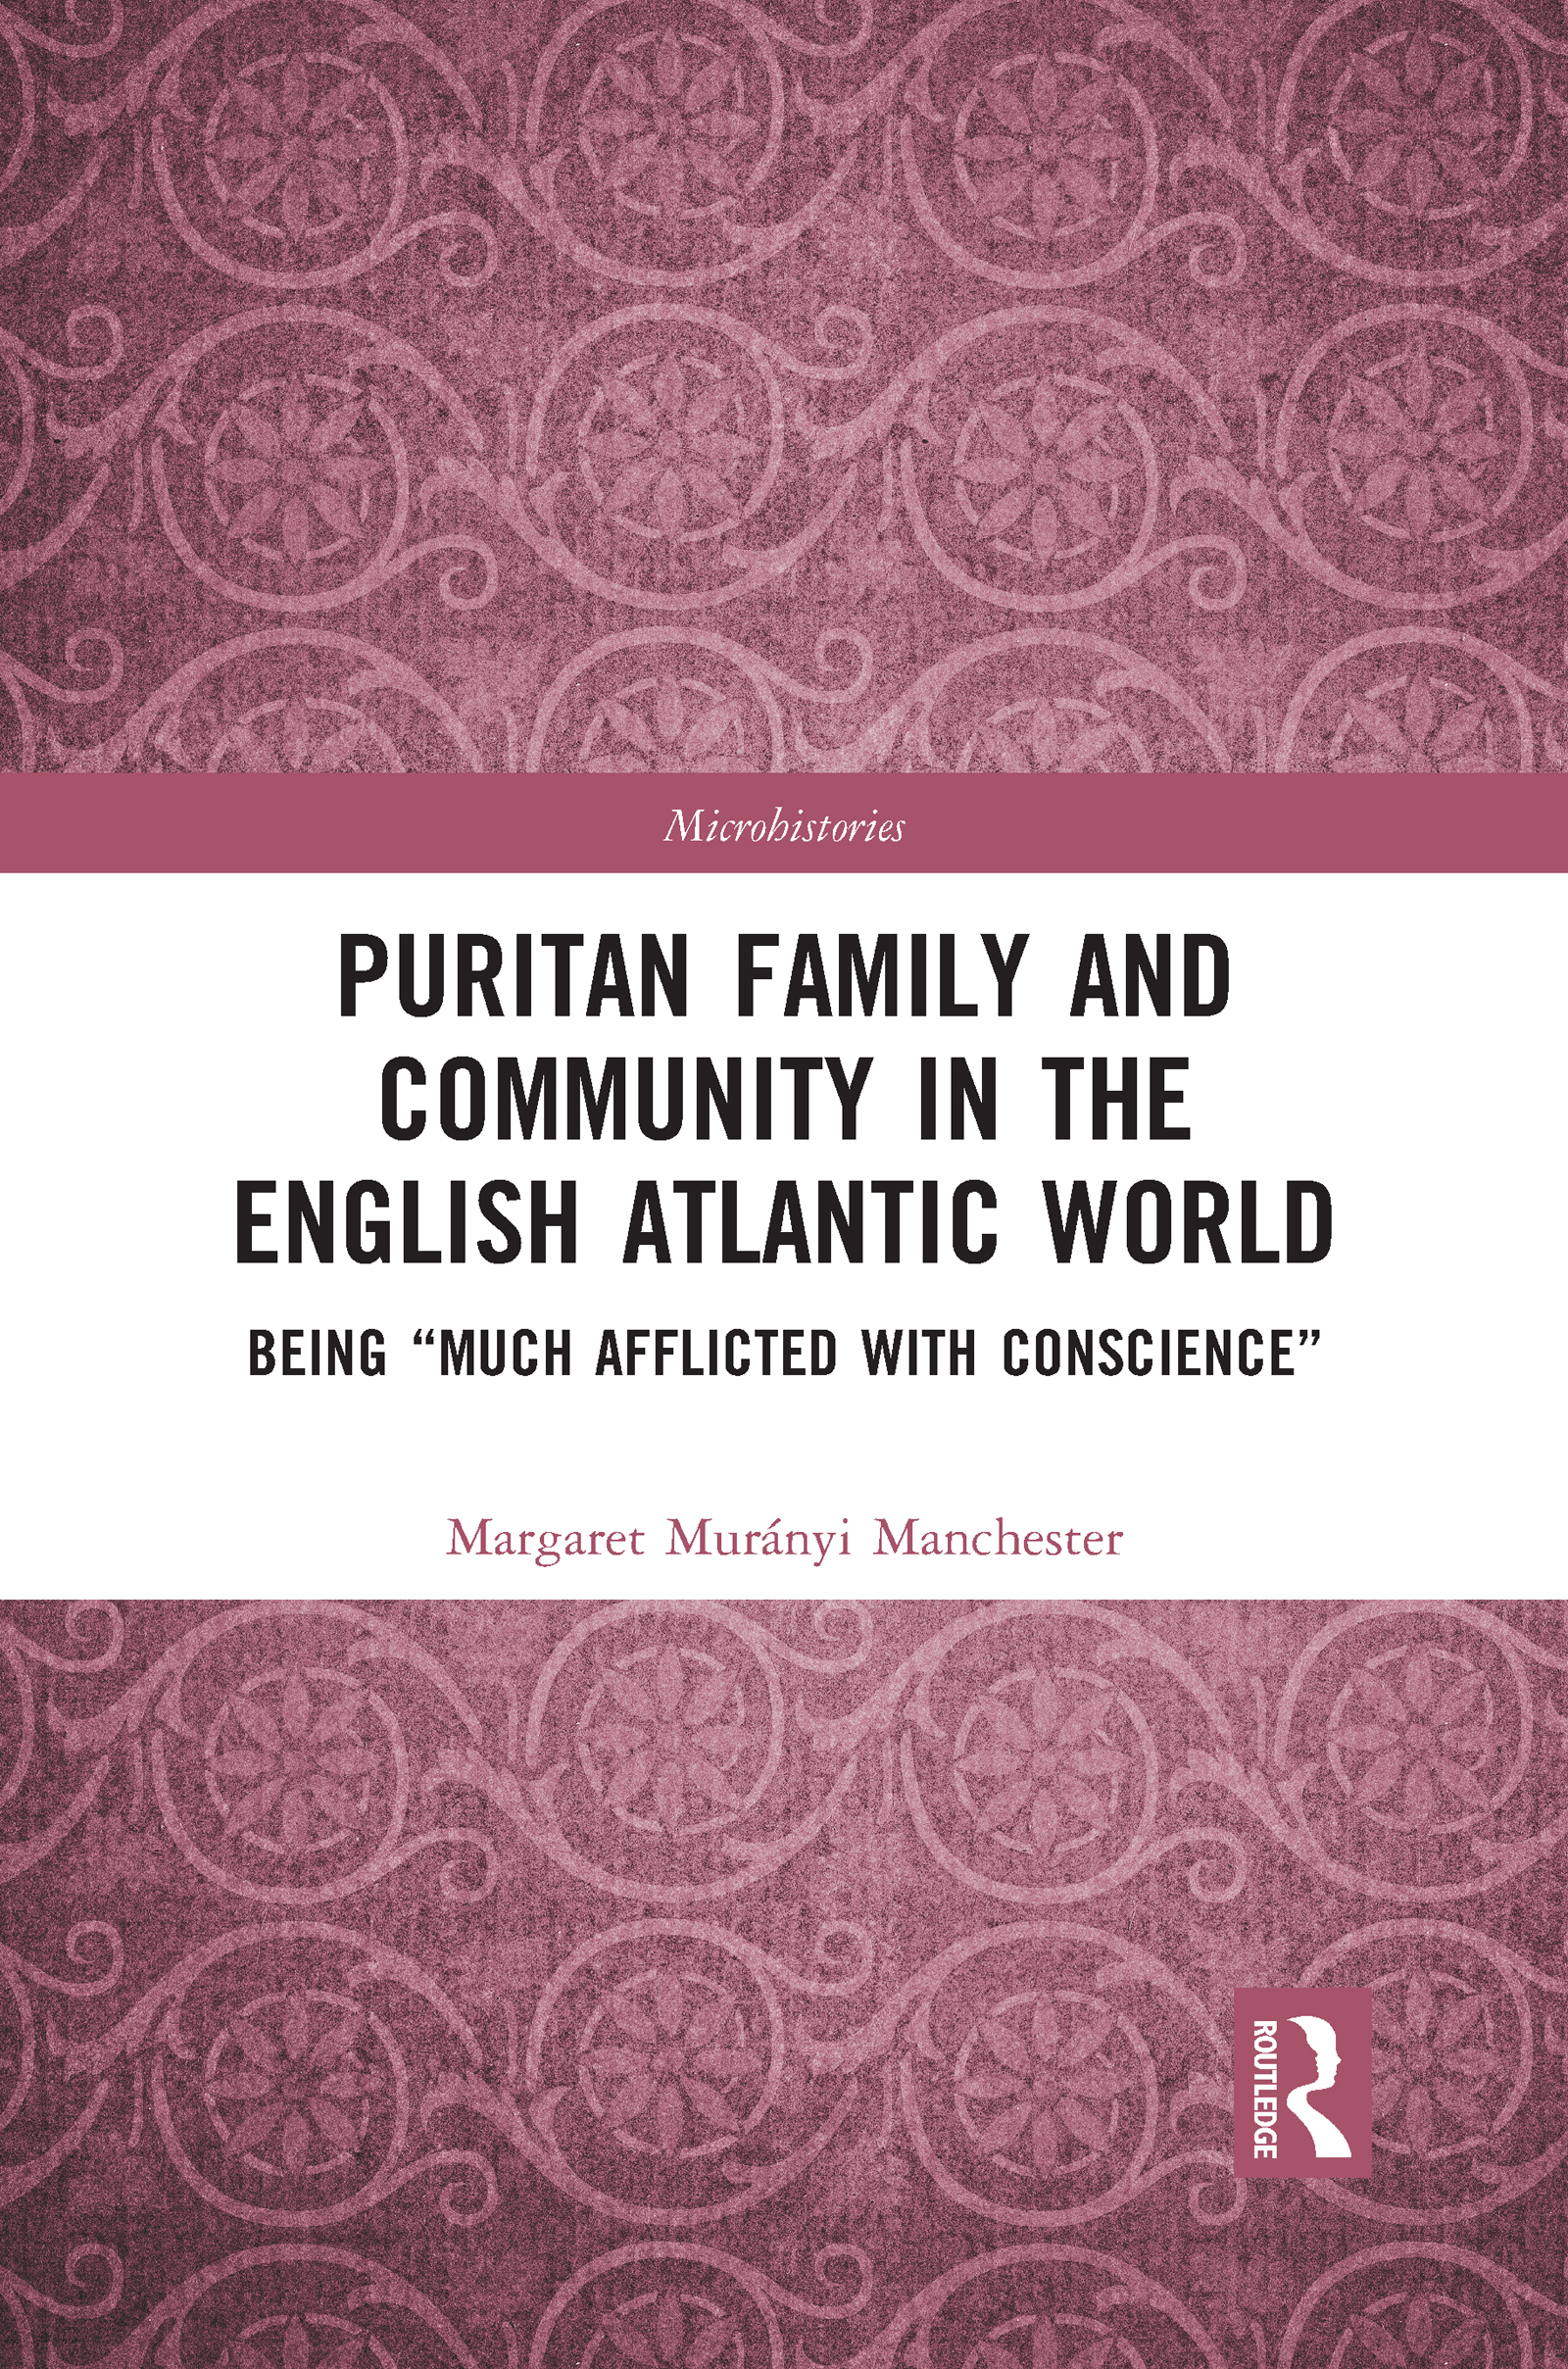 Puritan Family and Community in the English Atlantic World